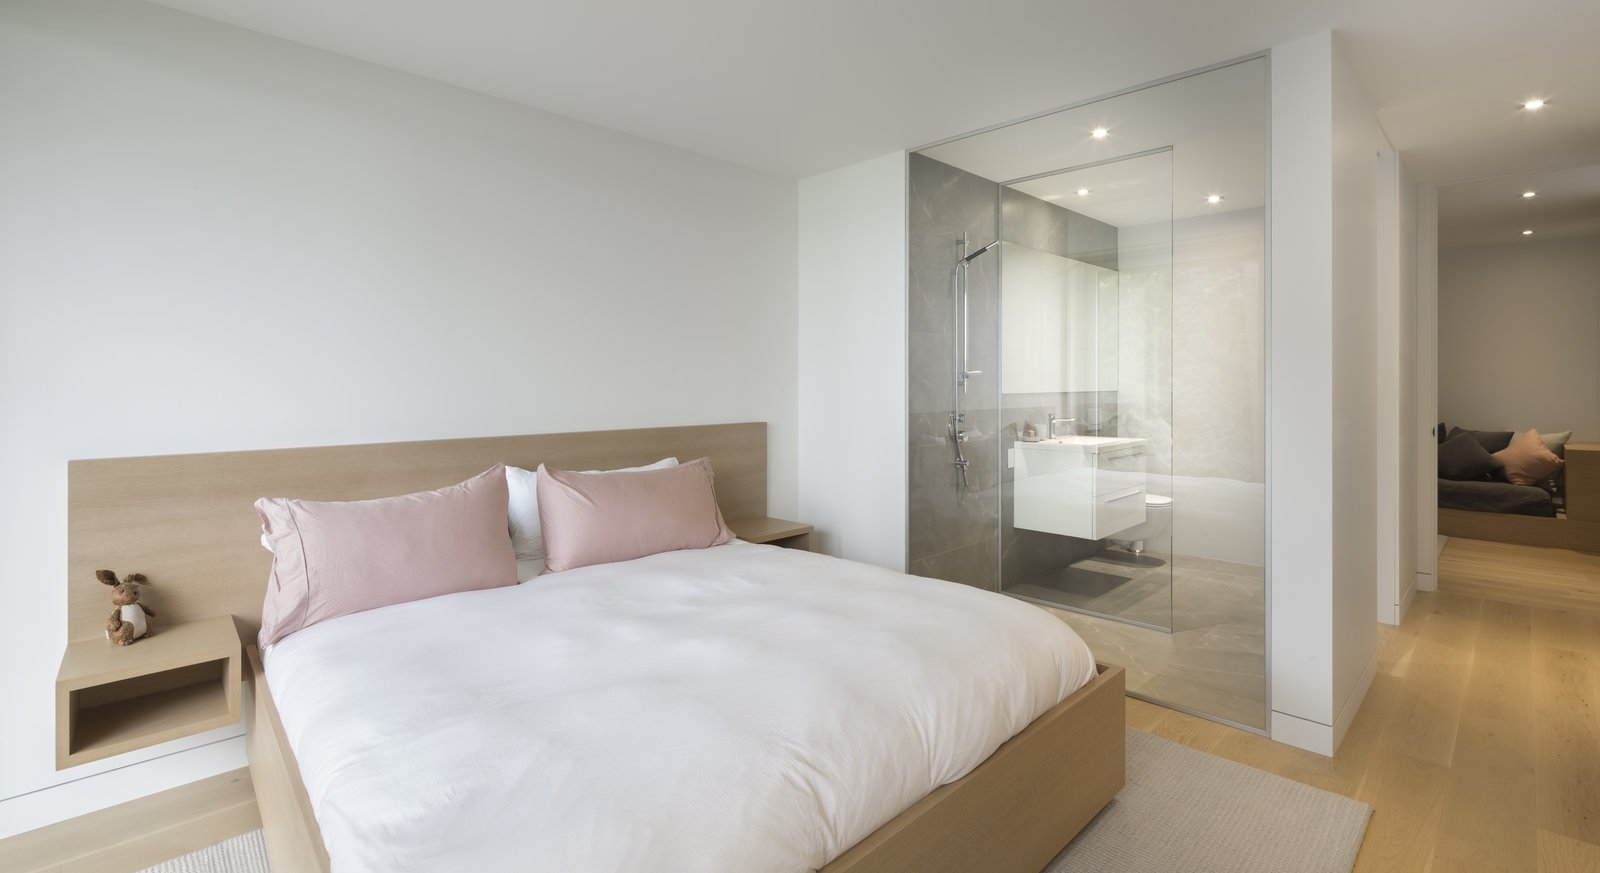 Bedroom, Bed, Night Stands, Light Hardwood Floor, Recessed Lighting, and Shelves A fuss-free, elegant and modern bedroom.  Photo 7 of 14 in A Lakeside Retreat in Quebec Looks Sharp With a Blade-Like Roof